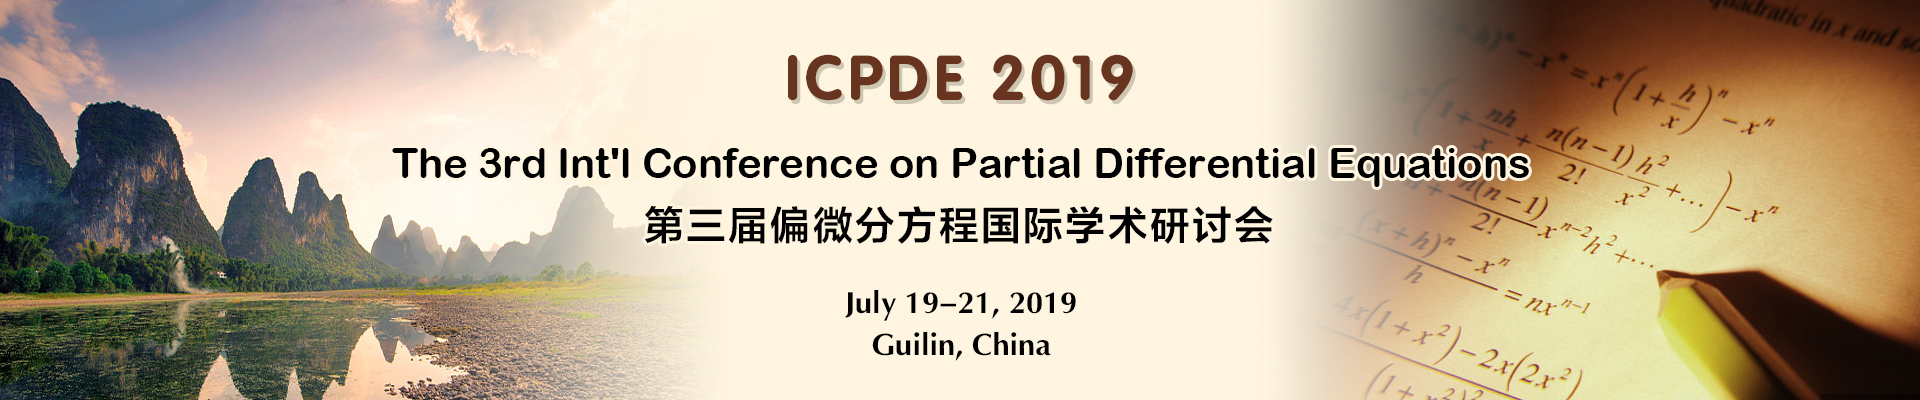 The 3rd Int'l Conference on Partial Differential Equations (ICPDE 2019), Guilin, Guangxi, China